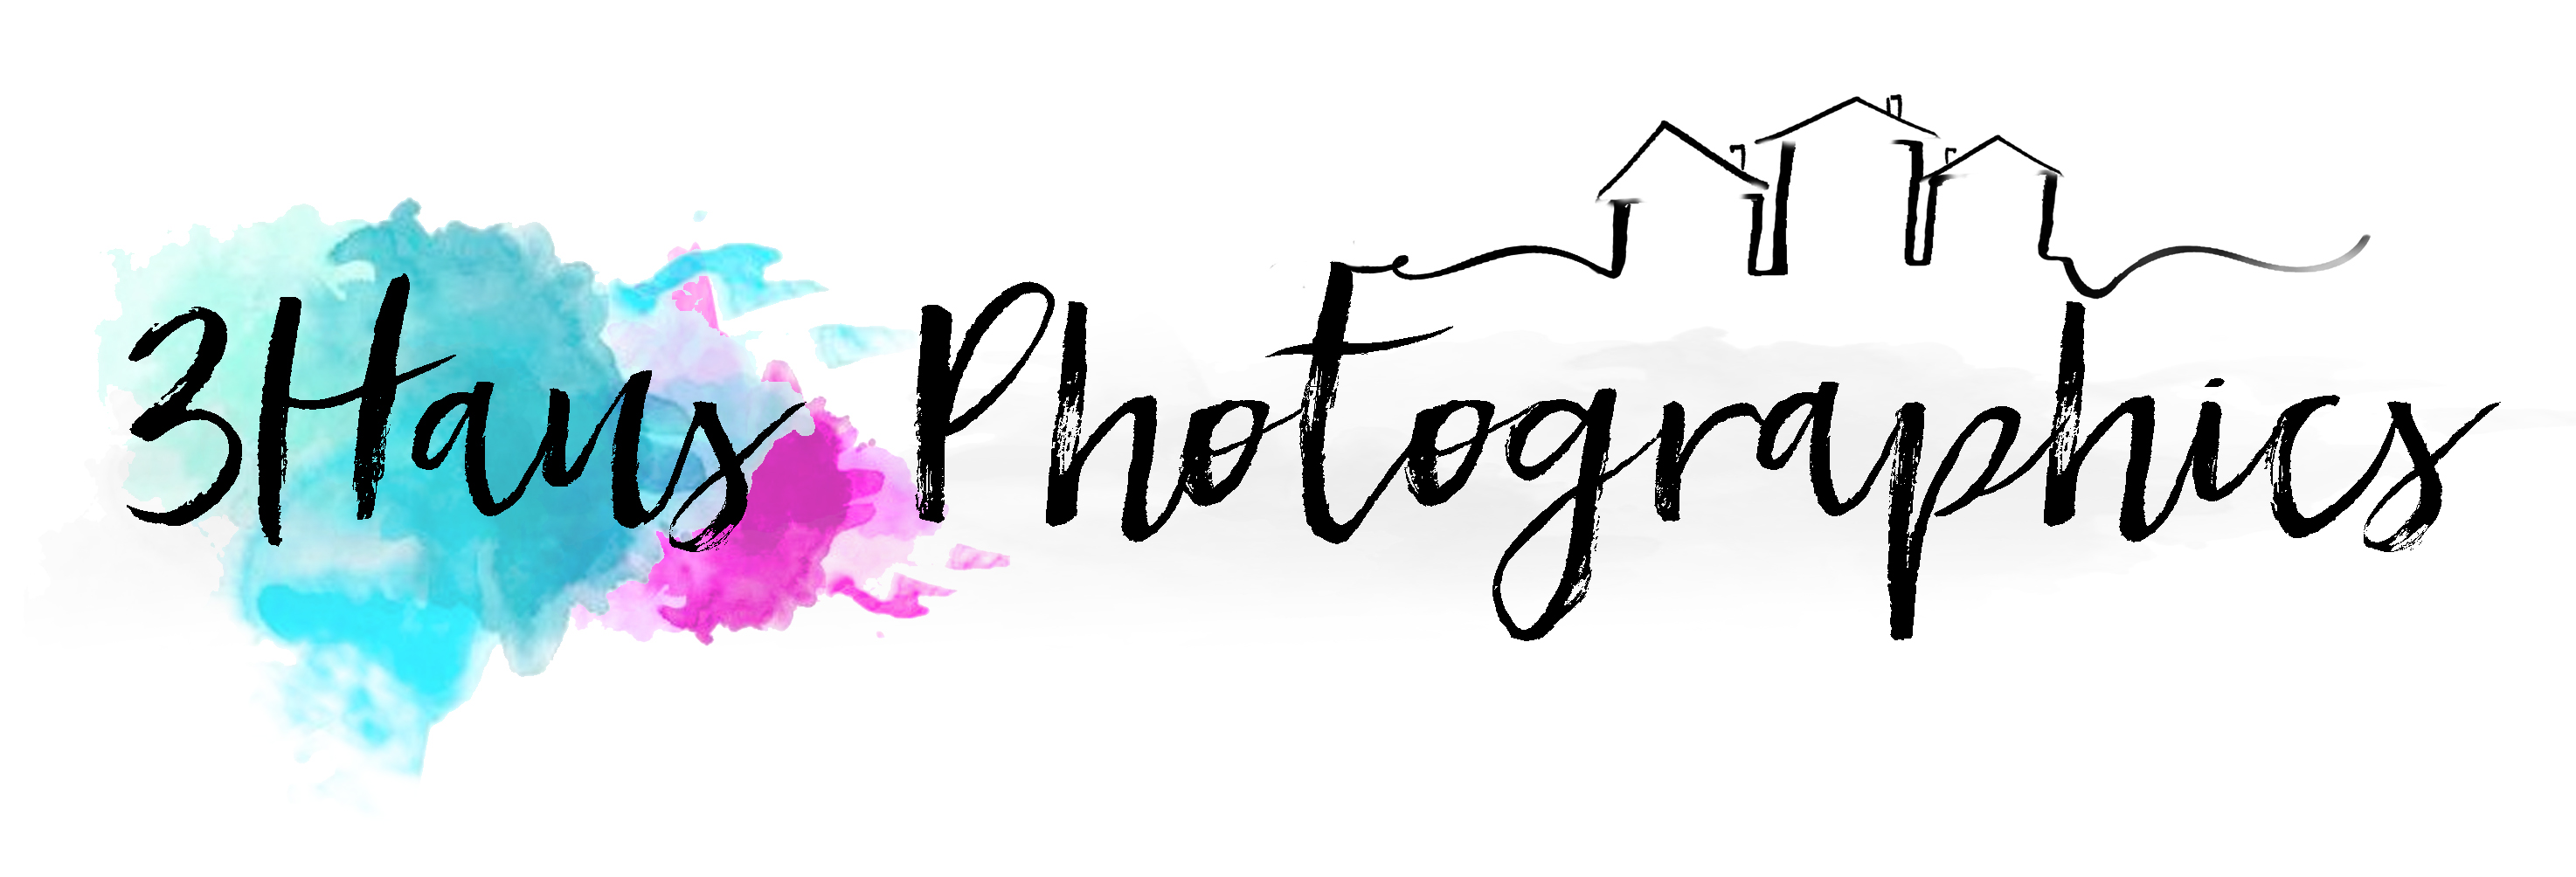 3Haus Photographics